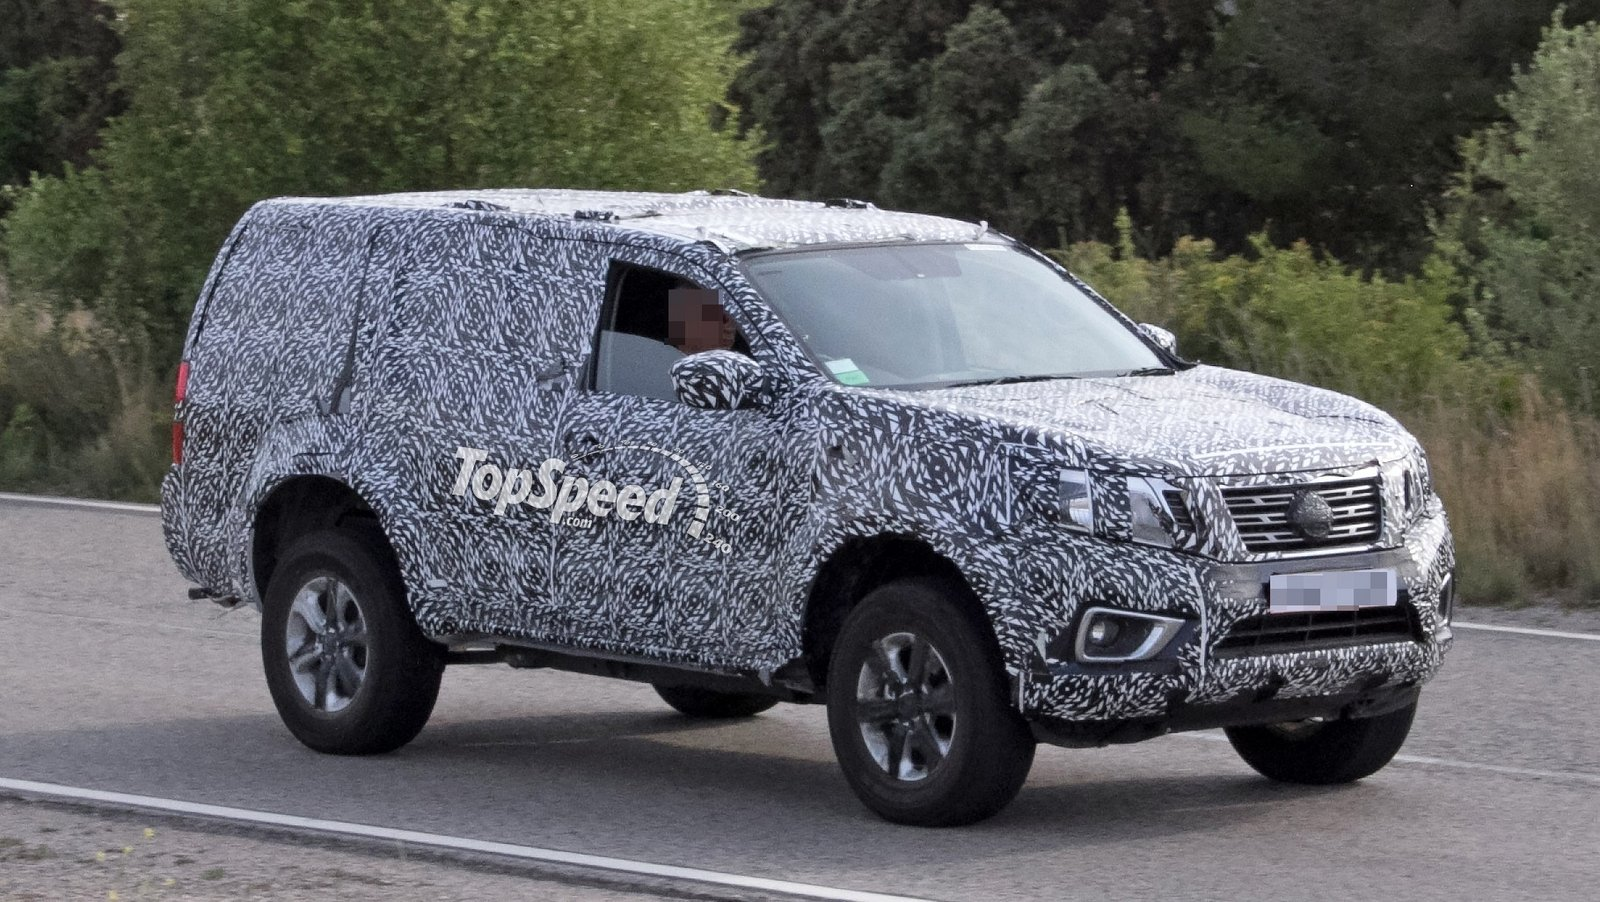 2018 Nissan Navara SUV - Picture 677675   truck review ...